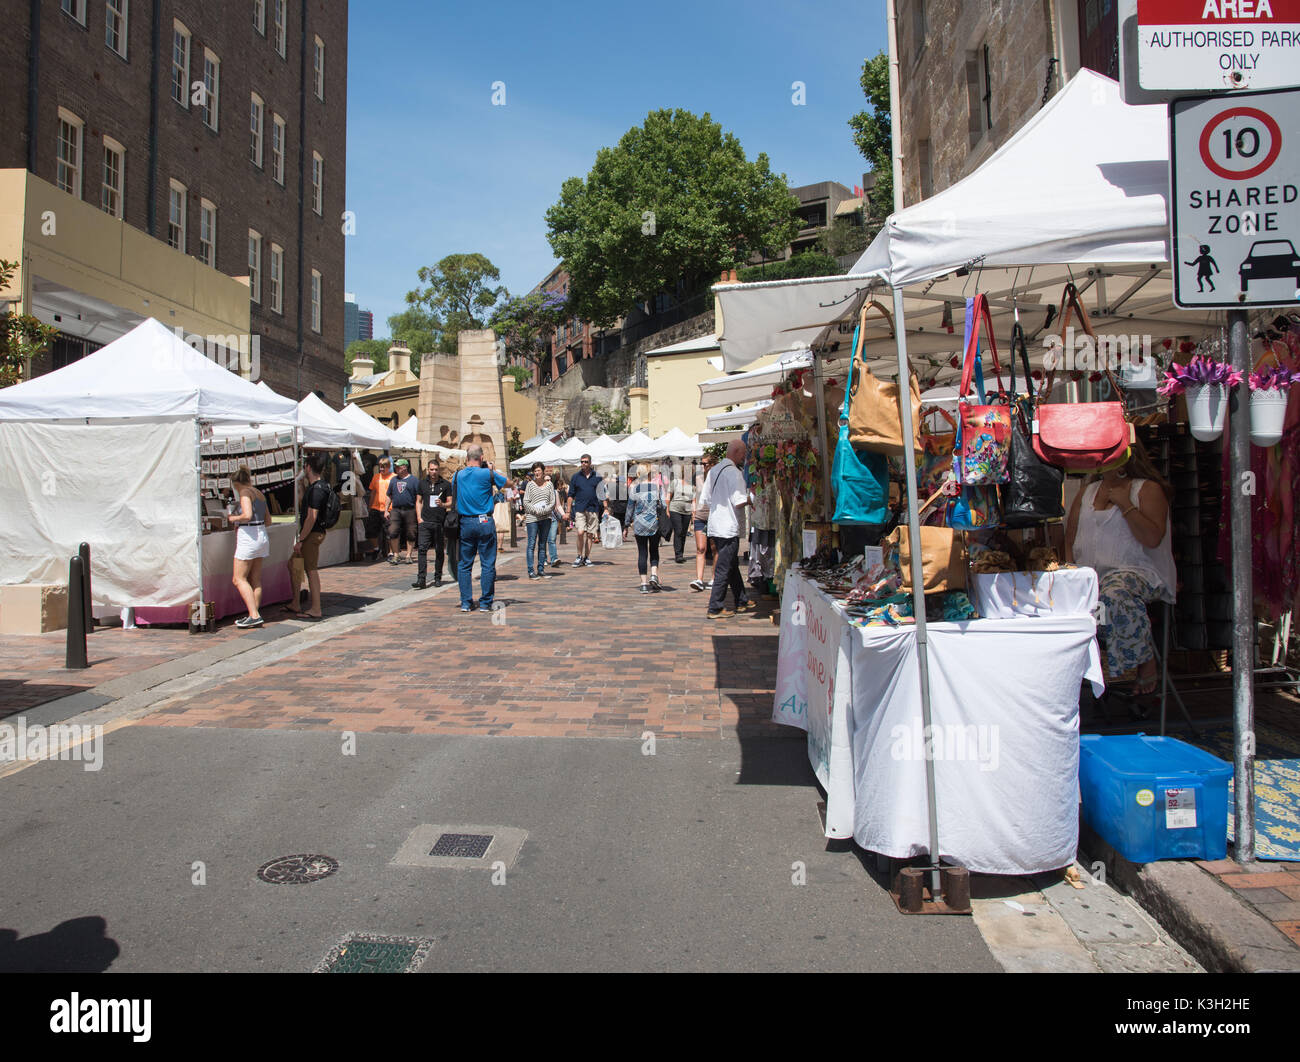 SYDNEY,NSW,AUSTRALIA-NOVEMBER 20,2016: Crowds and vendors at the Rocks Markets in Sydney, Australia - Stock Image